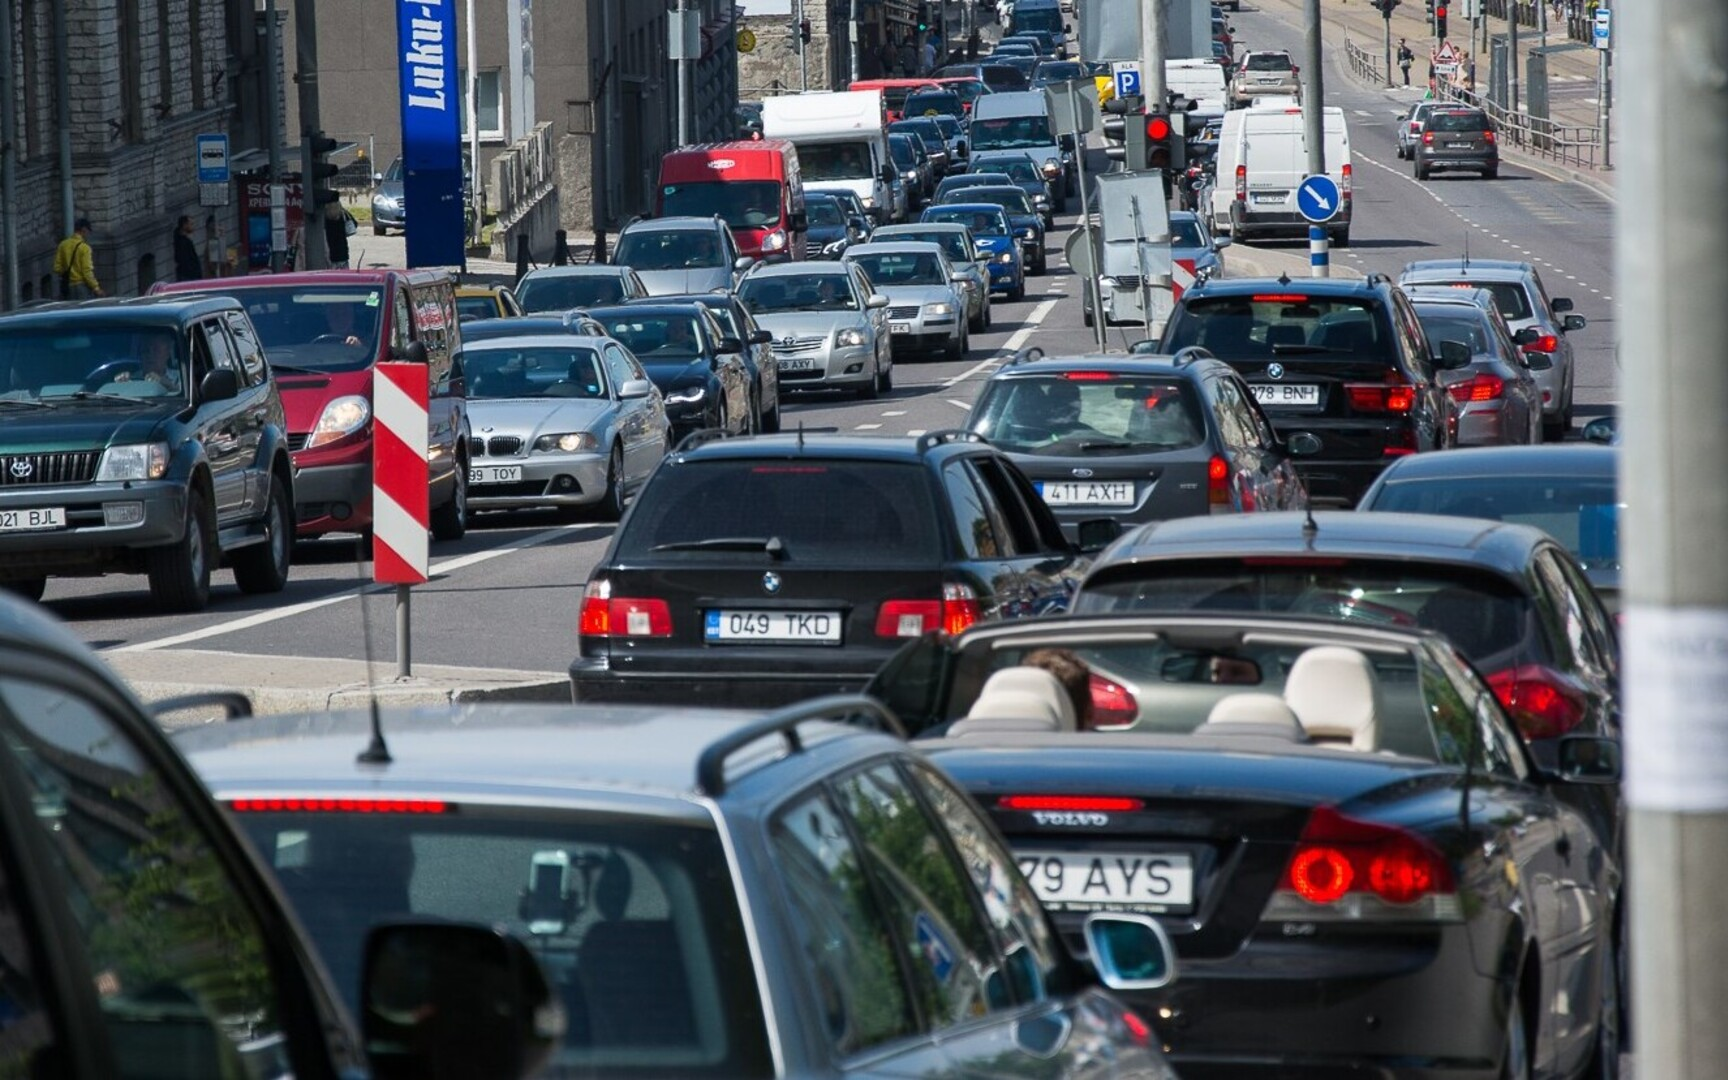 Traffic on Estonian roads increases further in first half of 2018